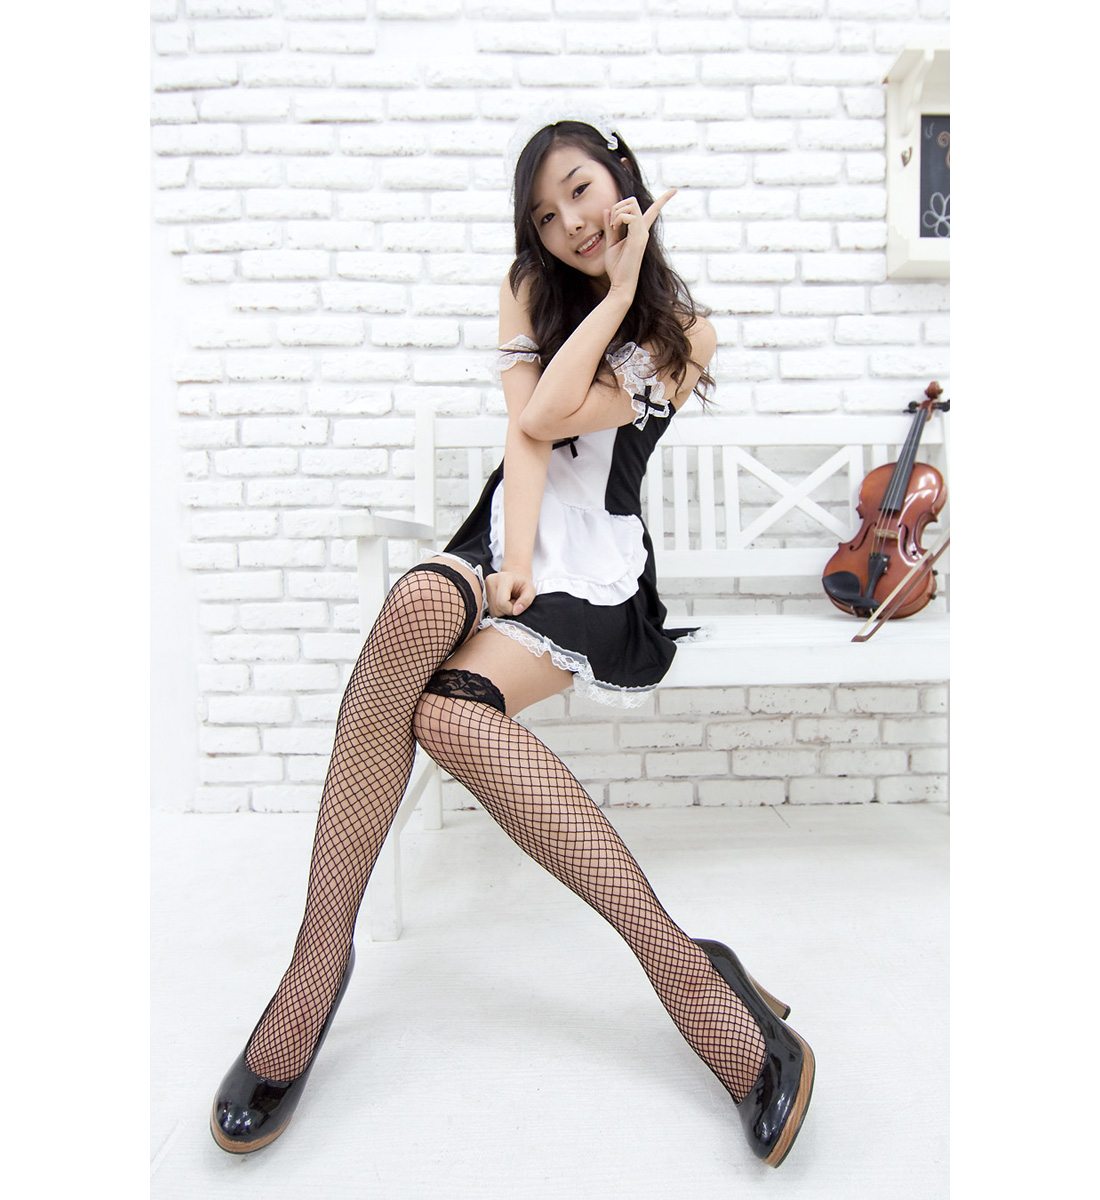 The perfect maid 2